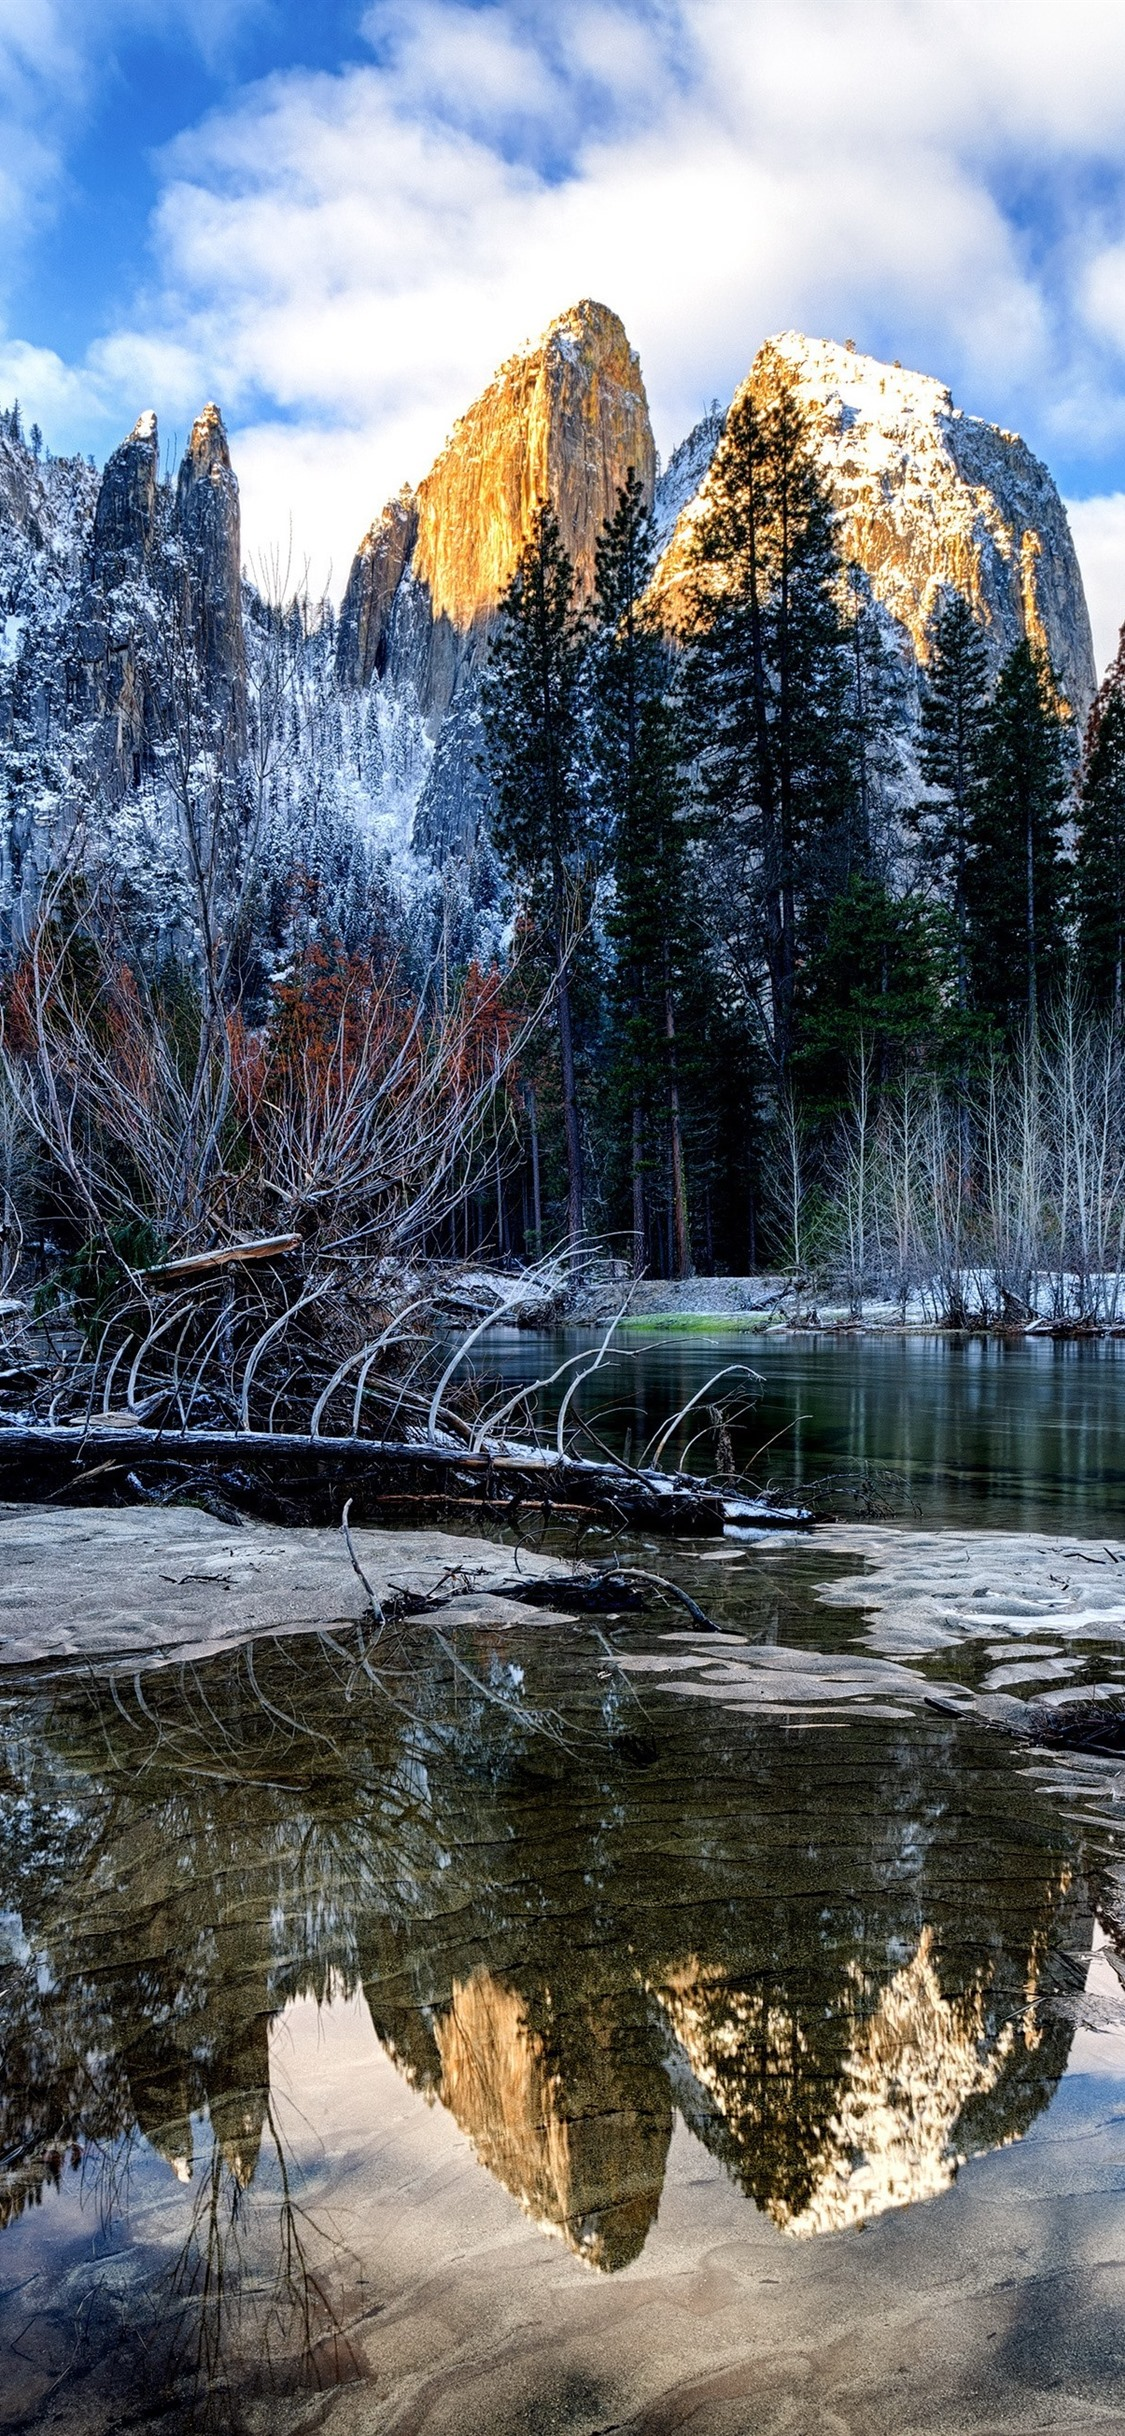 Iphone Wallpaper Winter, River, Trees, Mountains, Snow, - Reflection - HD Wallpaper